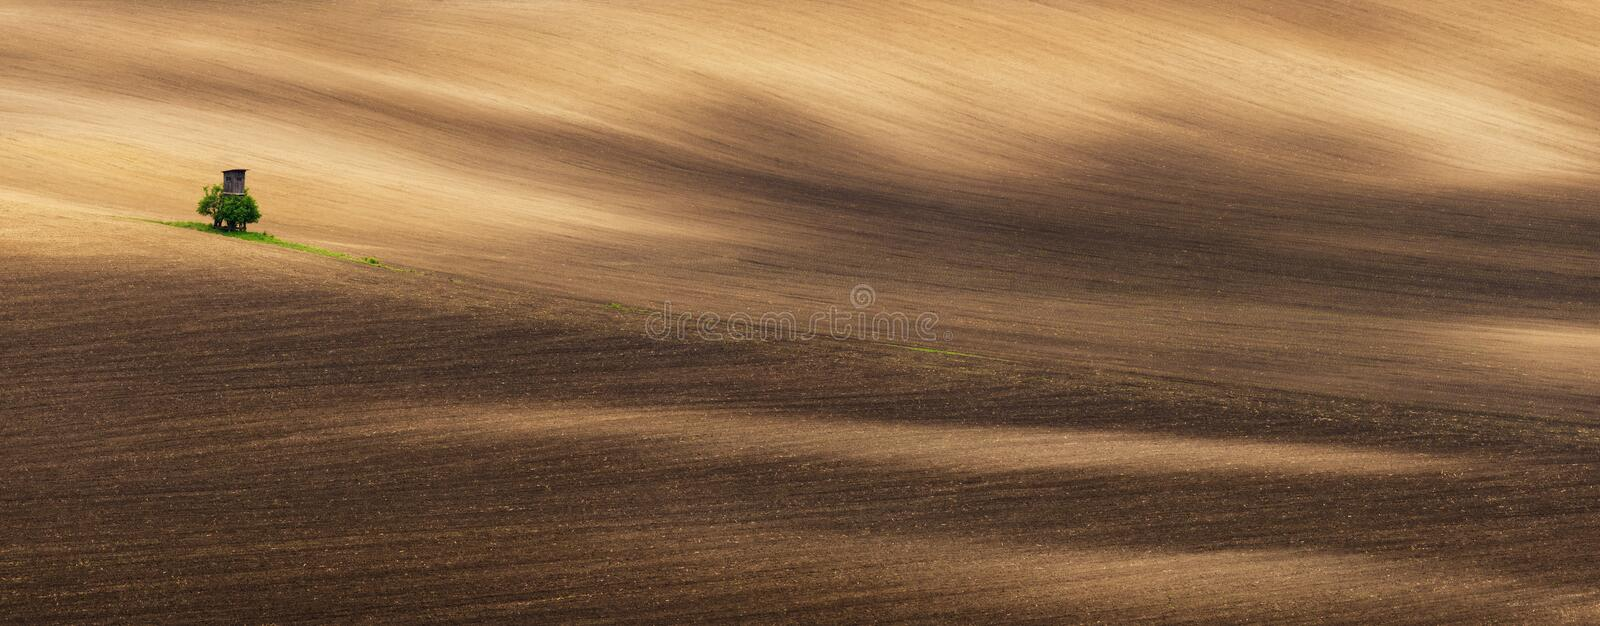 Panoramic View Of Beautiful Wavy Cultivated Fields And Hunting Tower In Springtime. Agricultural Landscape With Lonely Tower royalty free stock photo